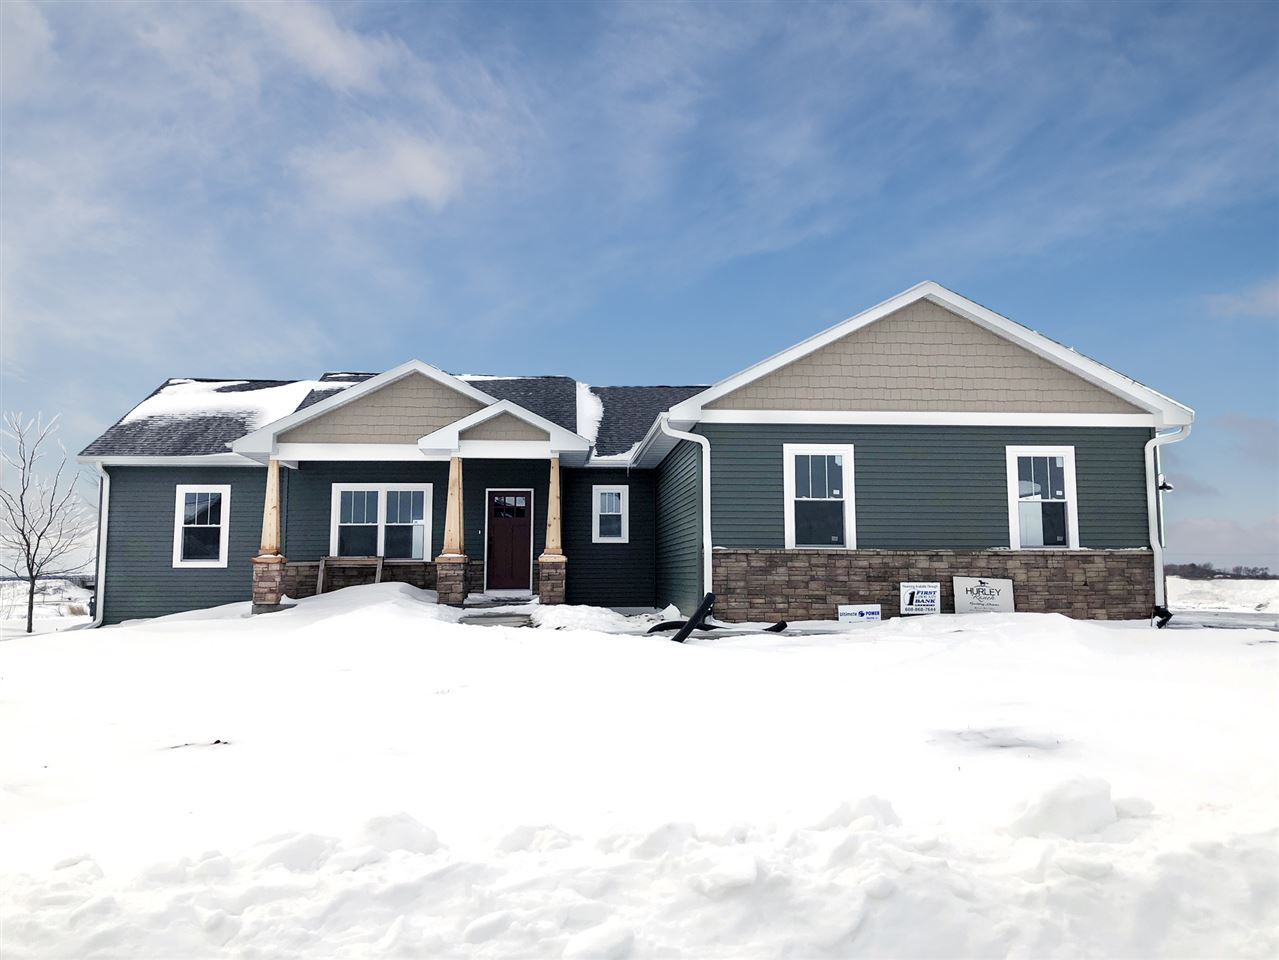 Complete Feb. 2019. NEW CRAFTSMAN HOME in beautiful Rockport Ridge Subdivision! Buy now & select your finishes! Home showcases gabled peaks, craftsman pillars, 9' walls,  open floor plan w/vaulted ceilings. Kitchen features solid maple Grey cabinets, large island, pantry, ss appliances & engineered hardwood floors. Spacious 3 car garage & laundry/mudrm incl front load washer & dryer. Master bdrm features 10' tray ceiling, large bath & huge walk-in closet. Basement stubbed for 3rd bath. Basement finishing available!